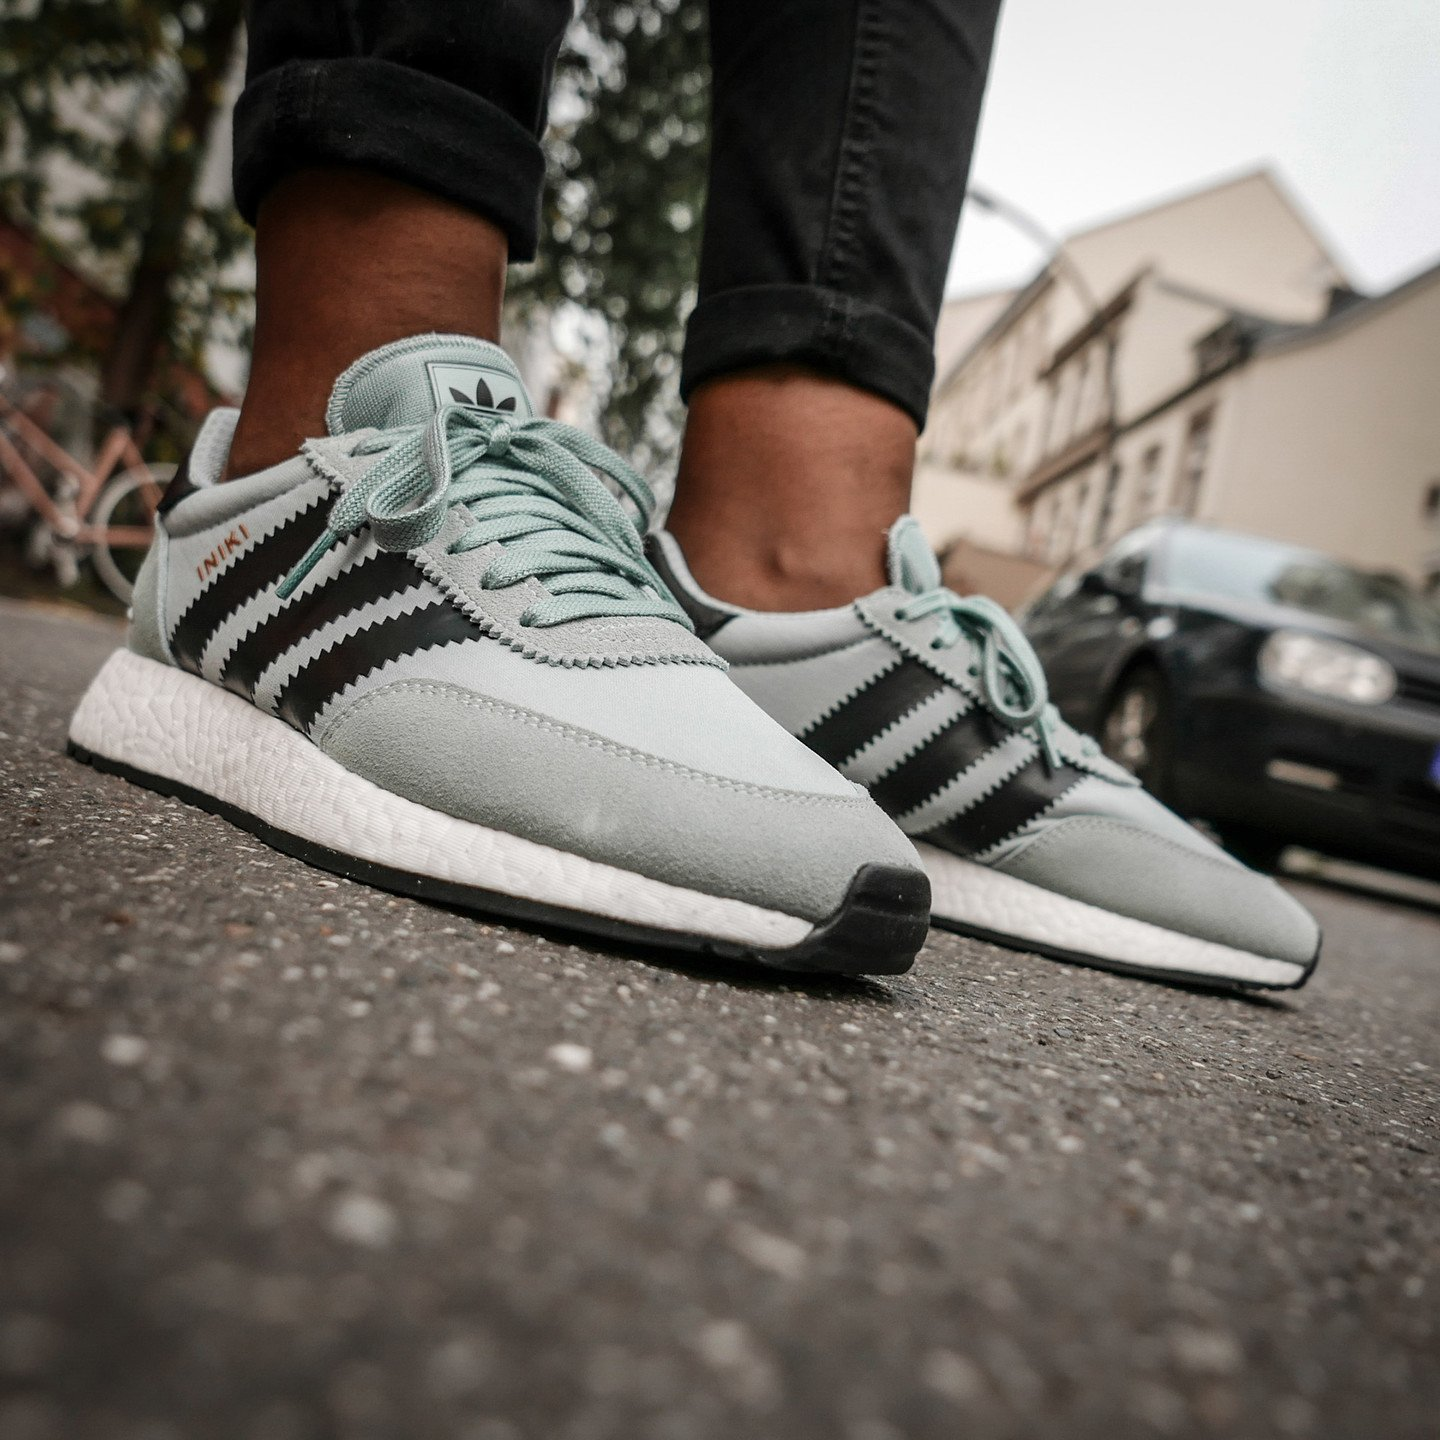 Adidas Iniki Runner W Tactile Green / Core Black / White  BY9096